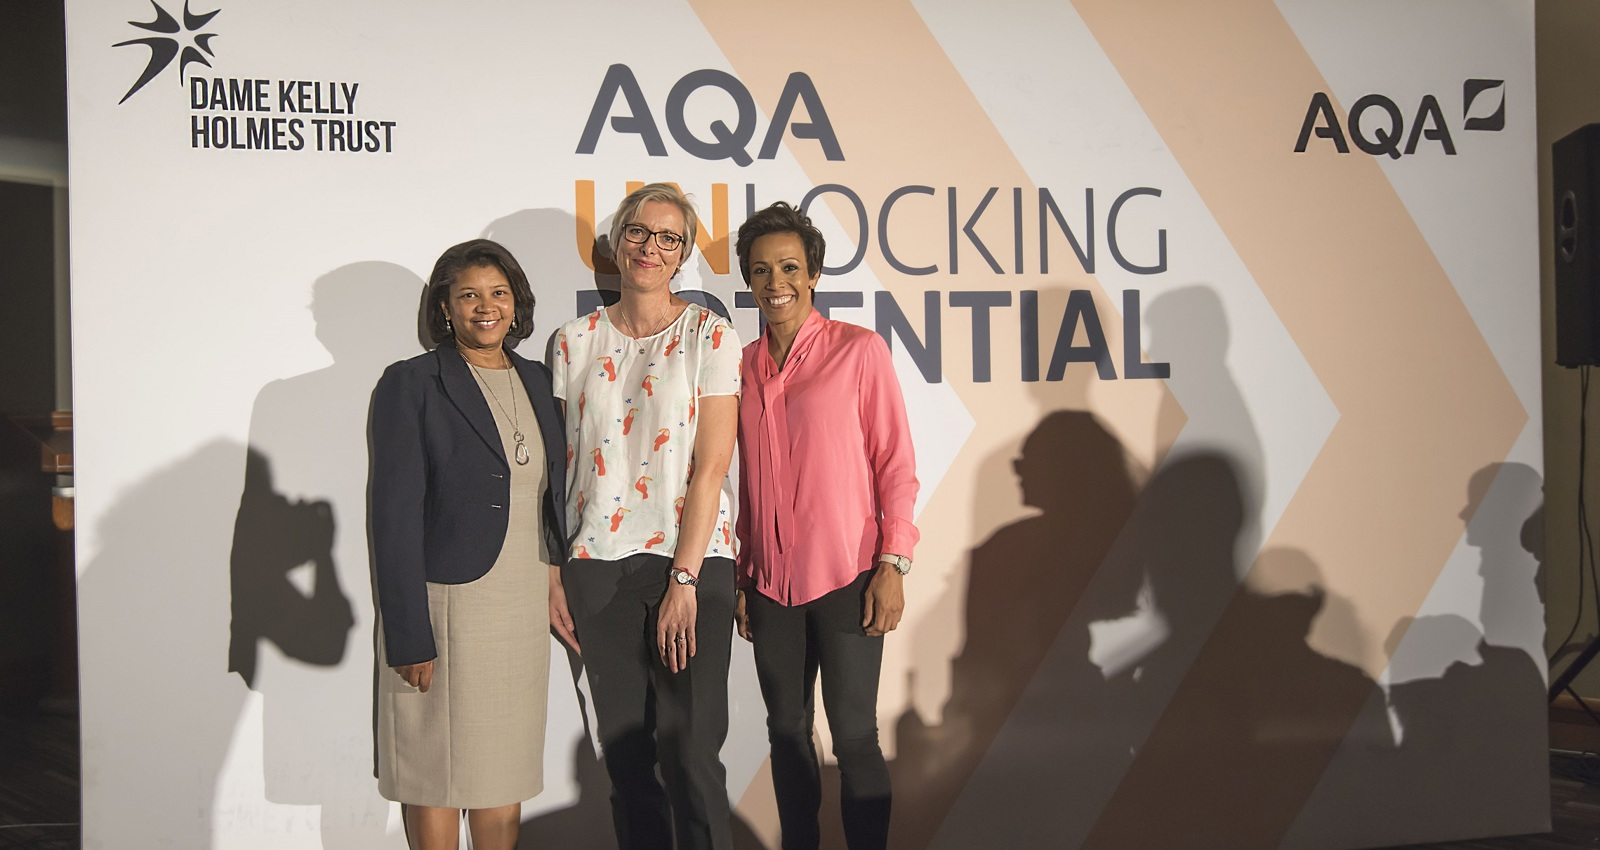 Trust and AQA announce extension of student mentoring programme